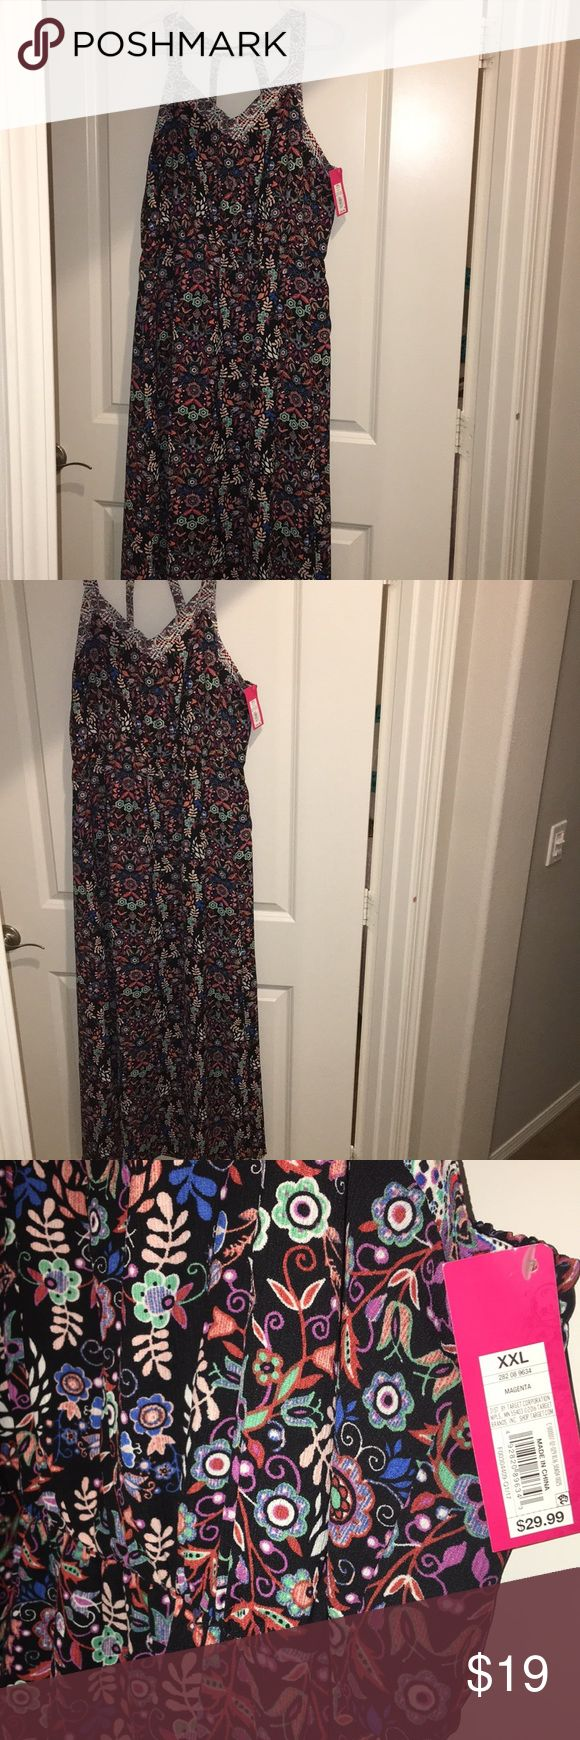 NWT target maxi dress Long dress with cross crossing in the back. Pretty floral dress. Never used or worn Xhilaration Dresses Maxi